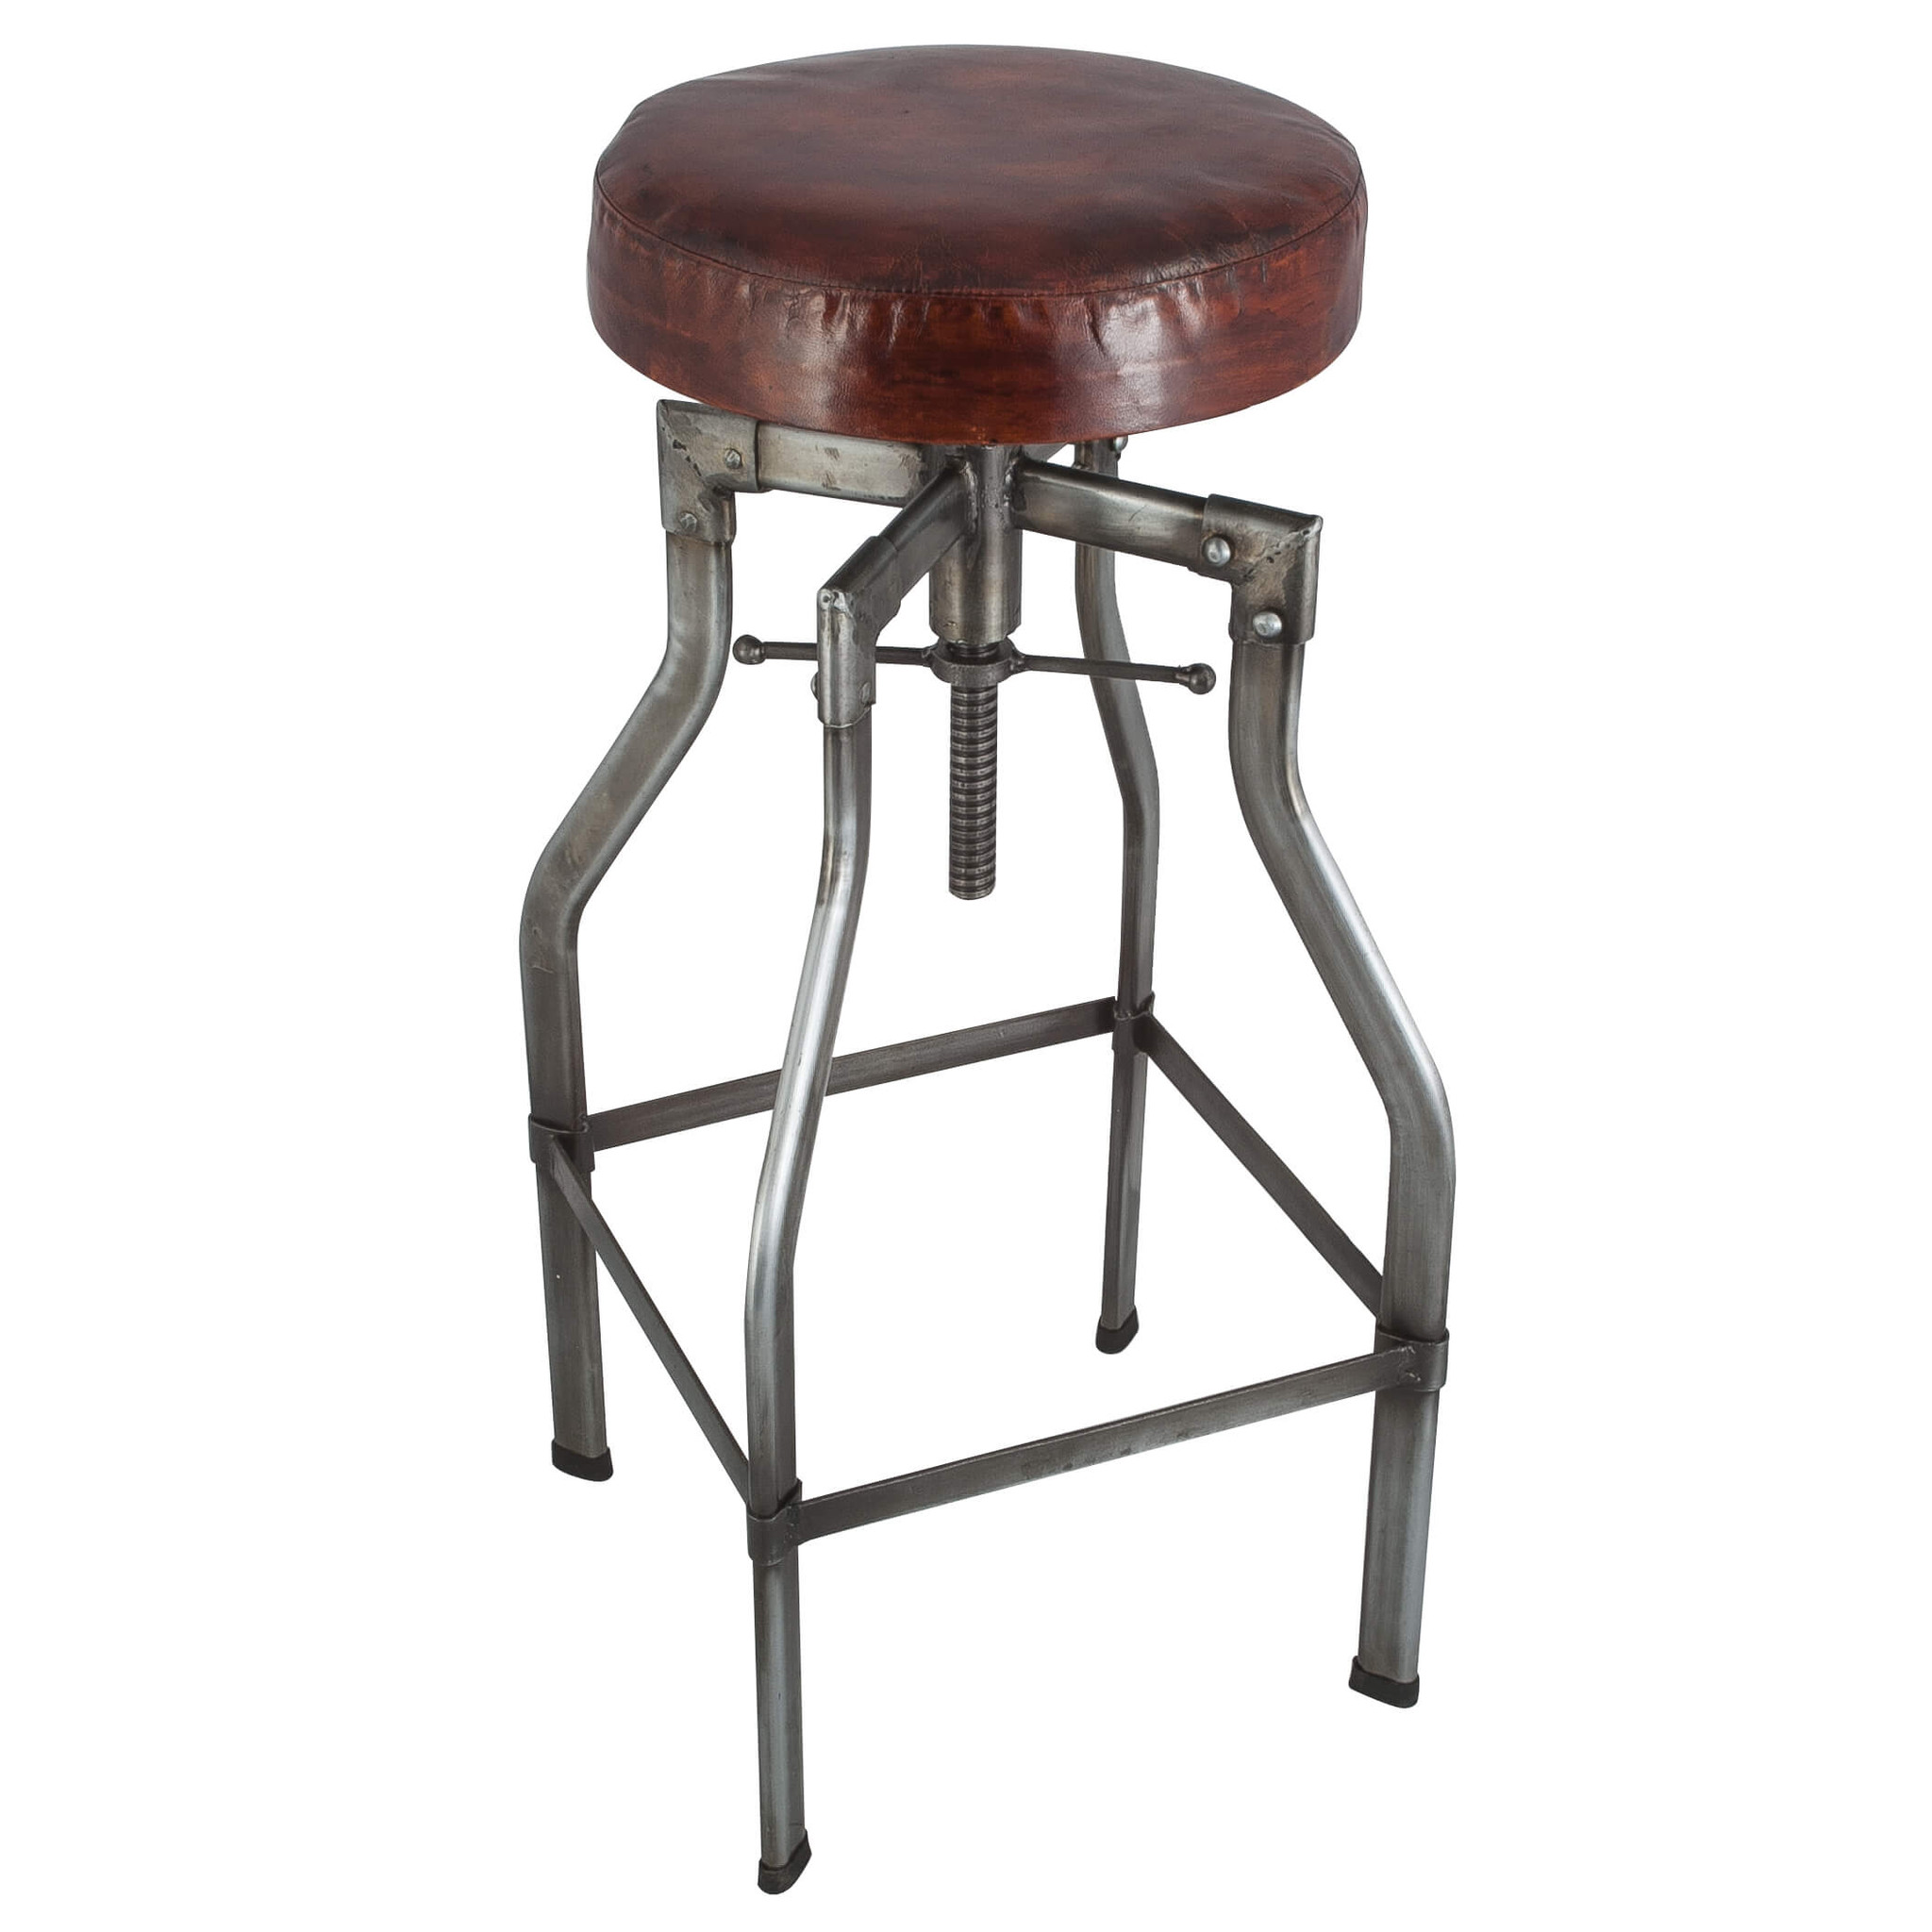 Chic leather bar stools for home furniture with leather swivel bar stools